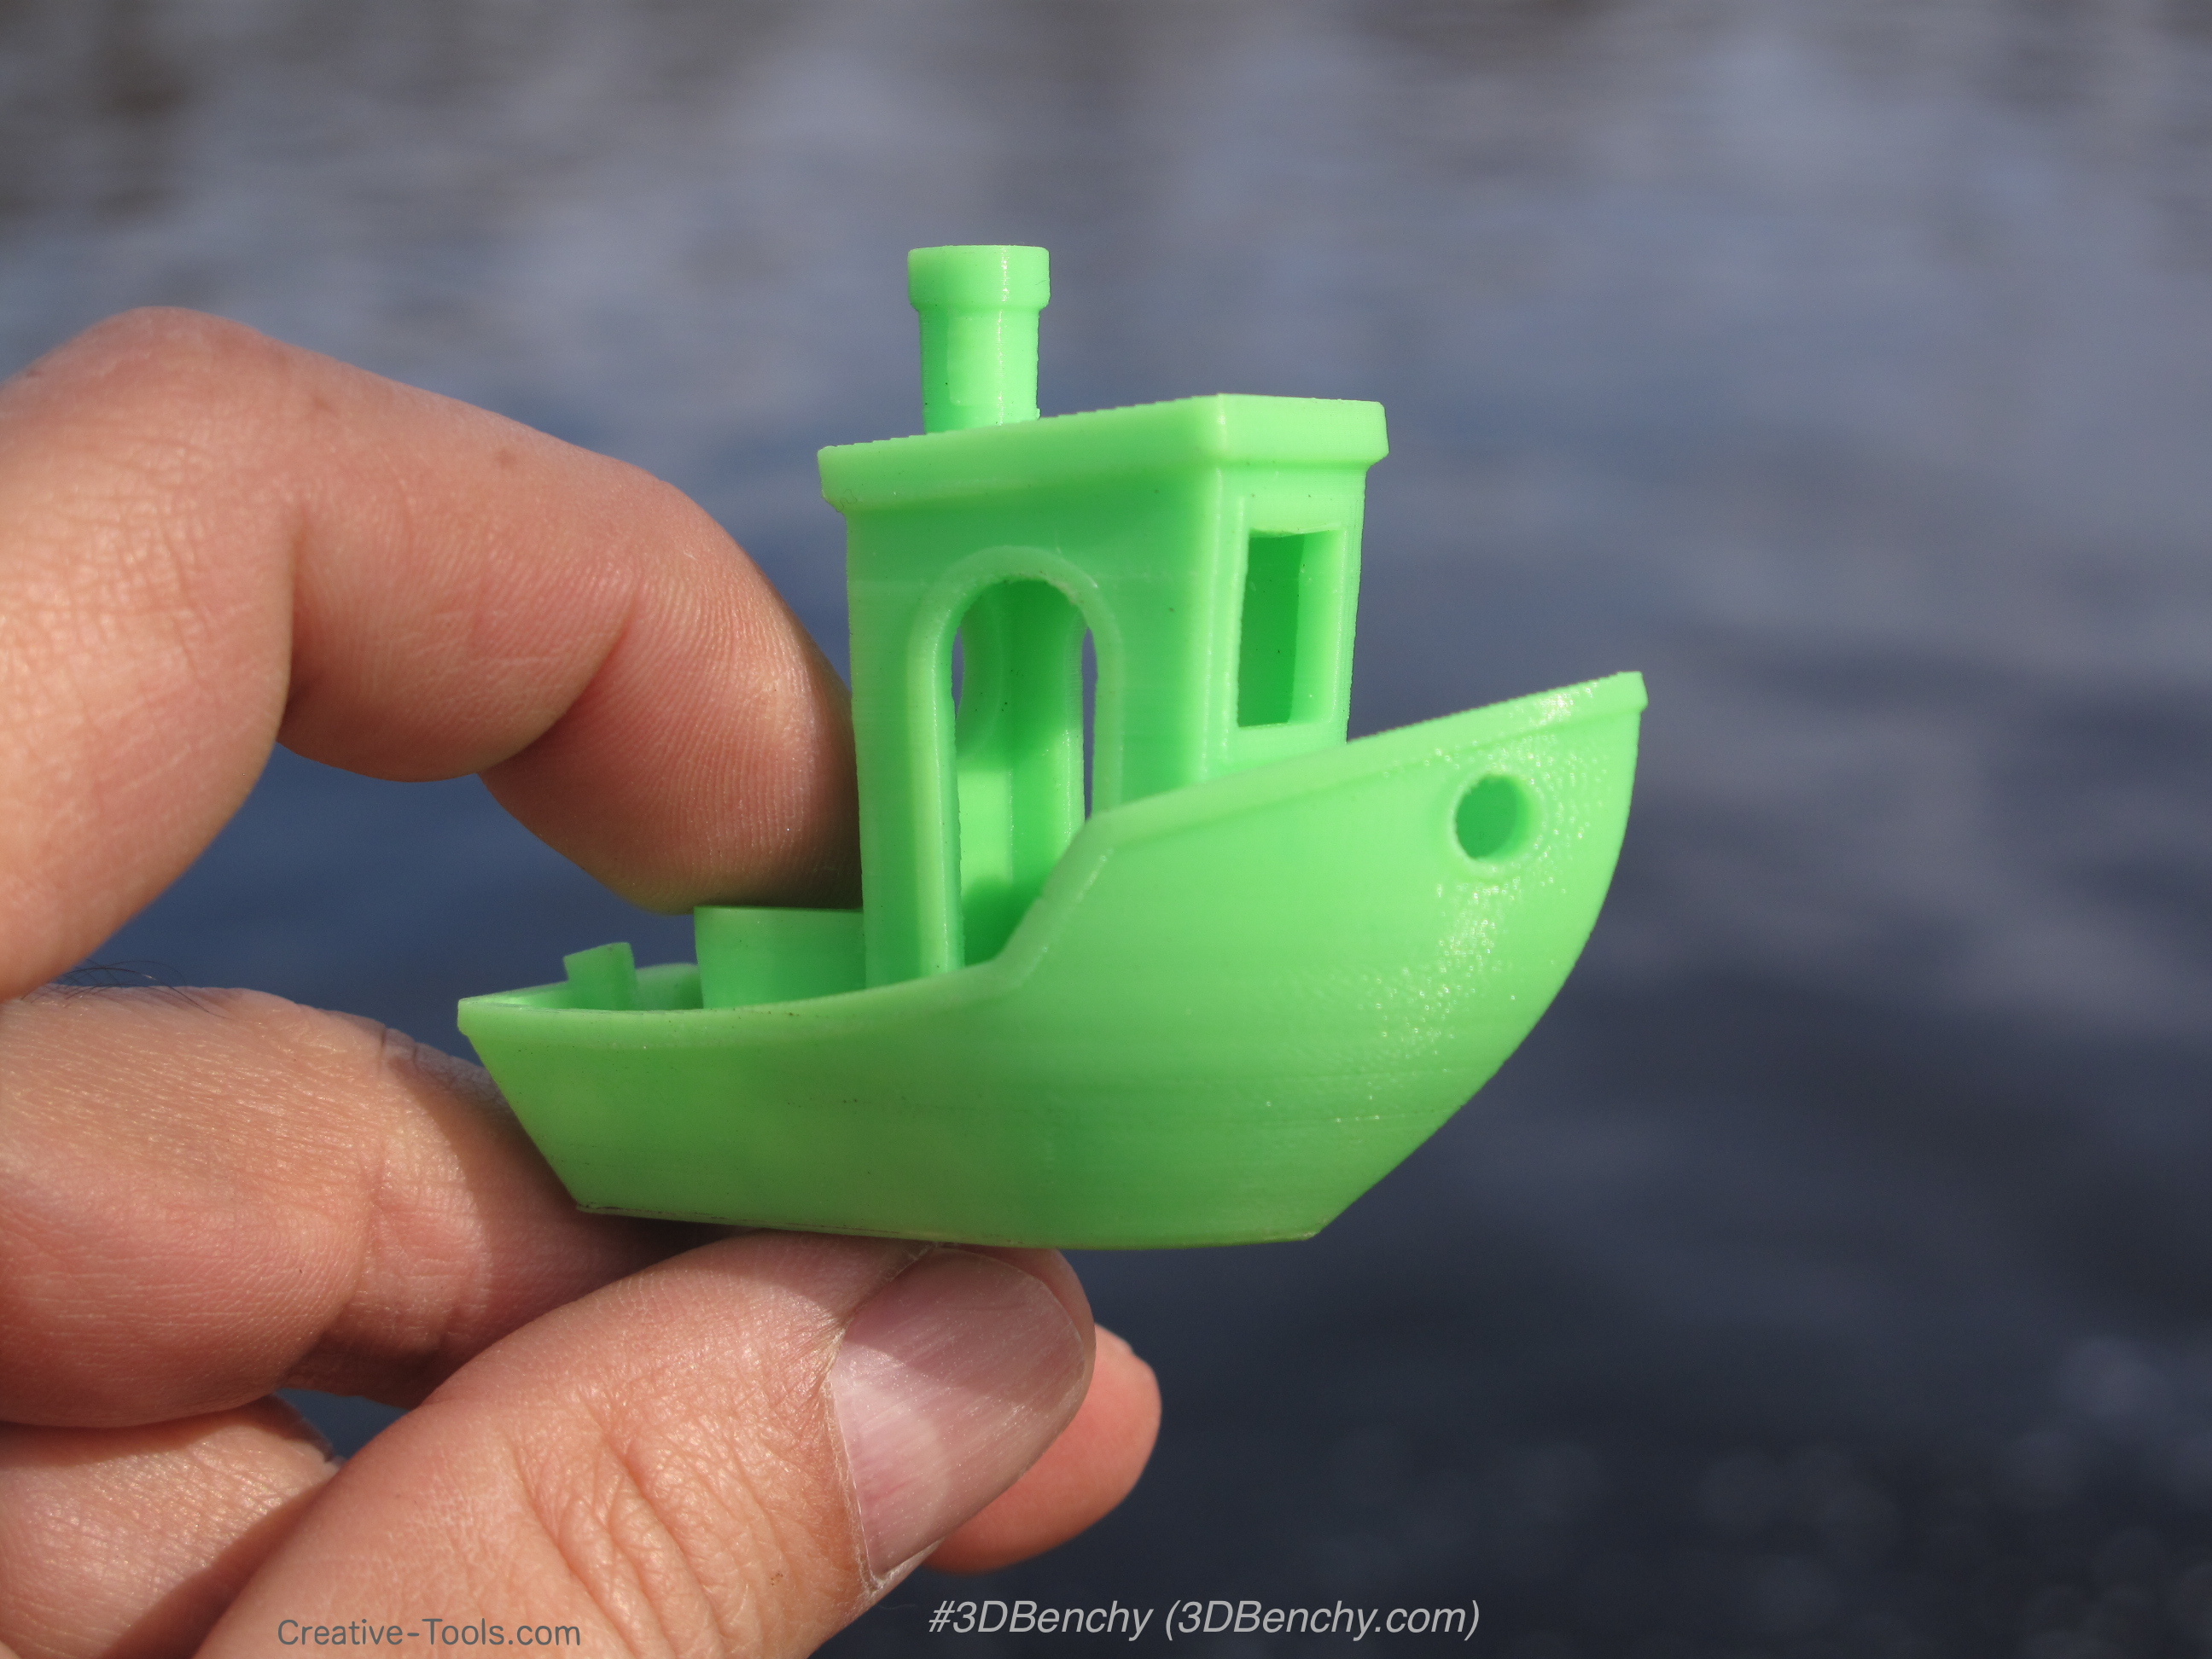 3DBenchy - The jolly 3D printing torture-test by